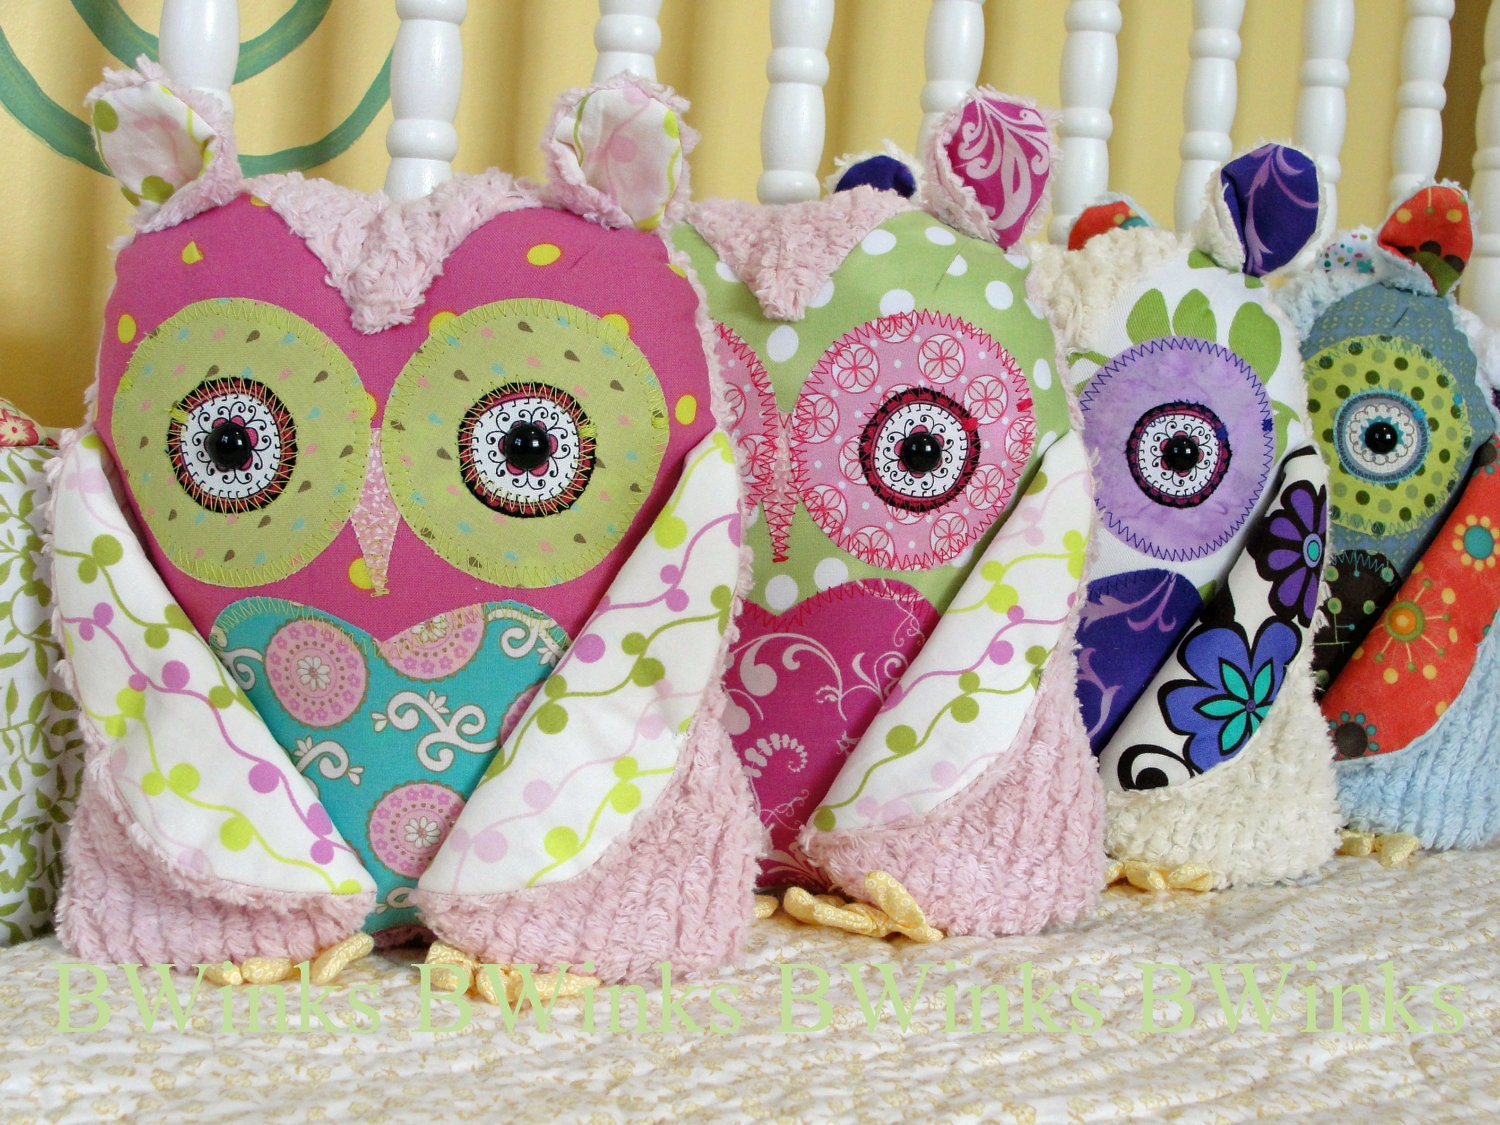 Medium bwinks 39 stuffed owl pillow for girls room decor by bwinks - Girl owl decor ...